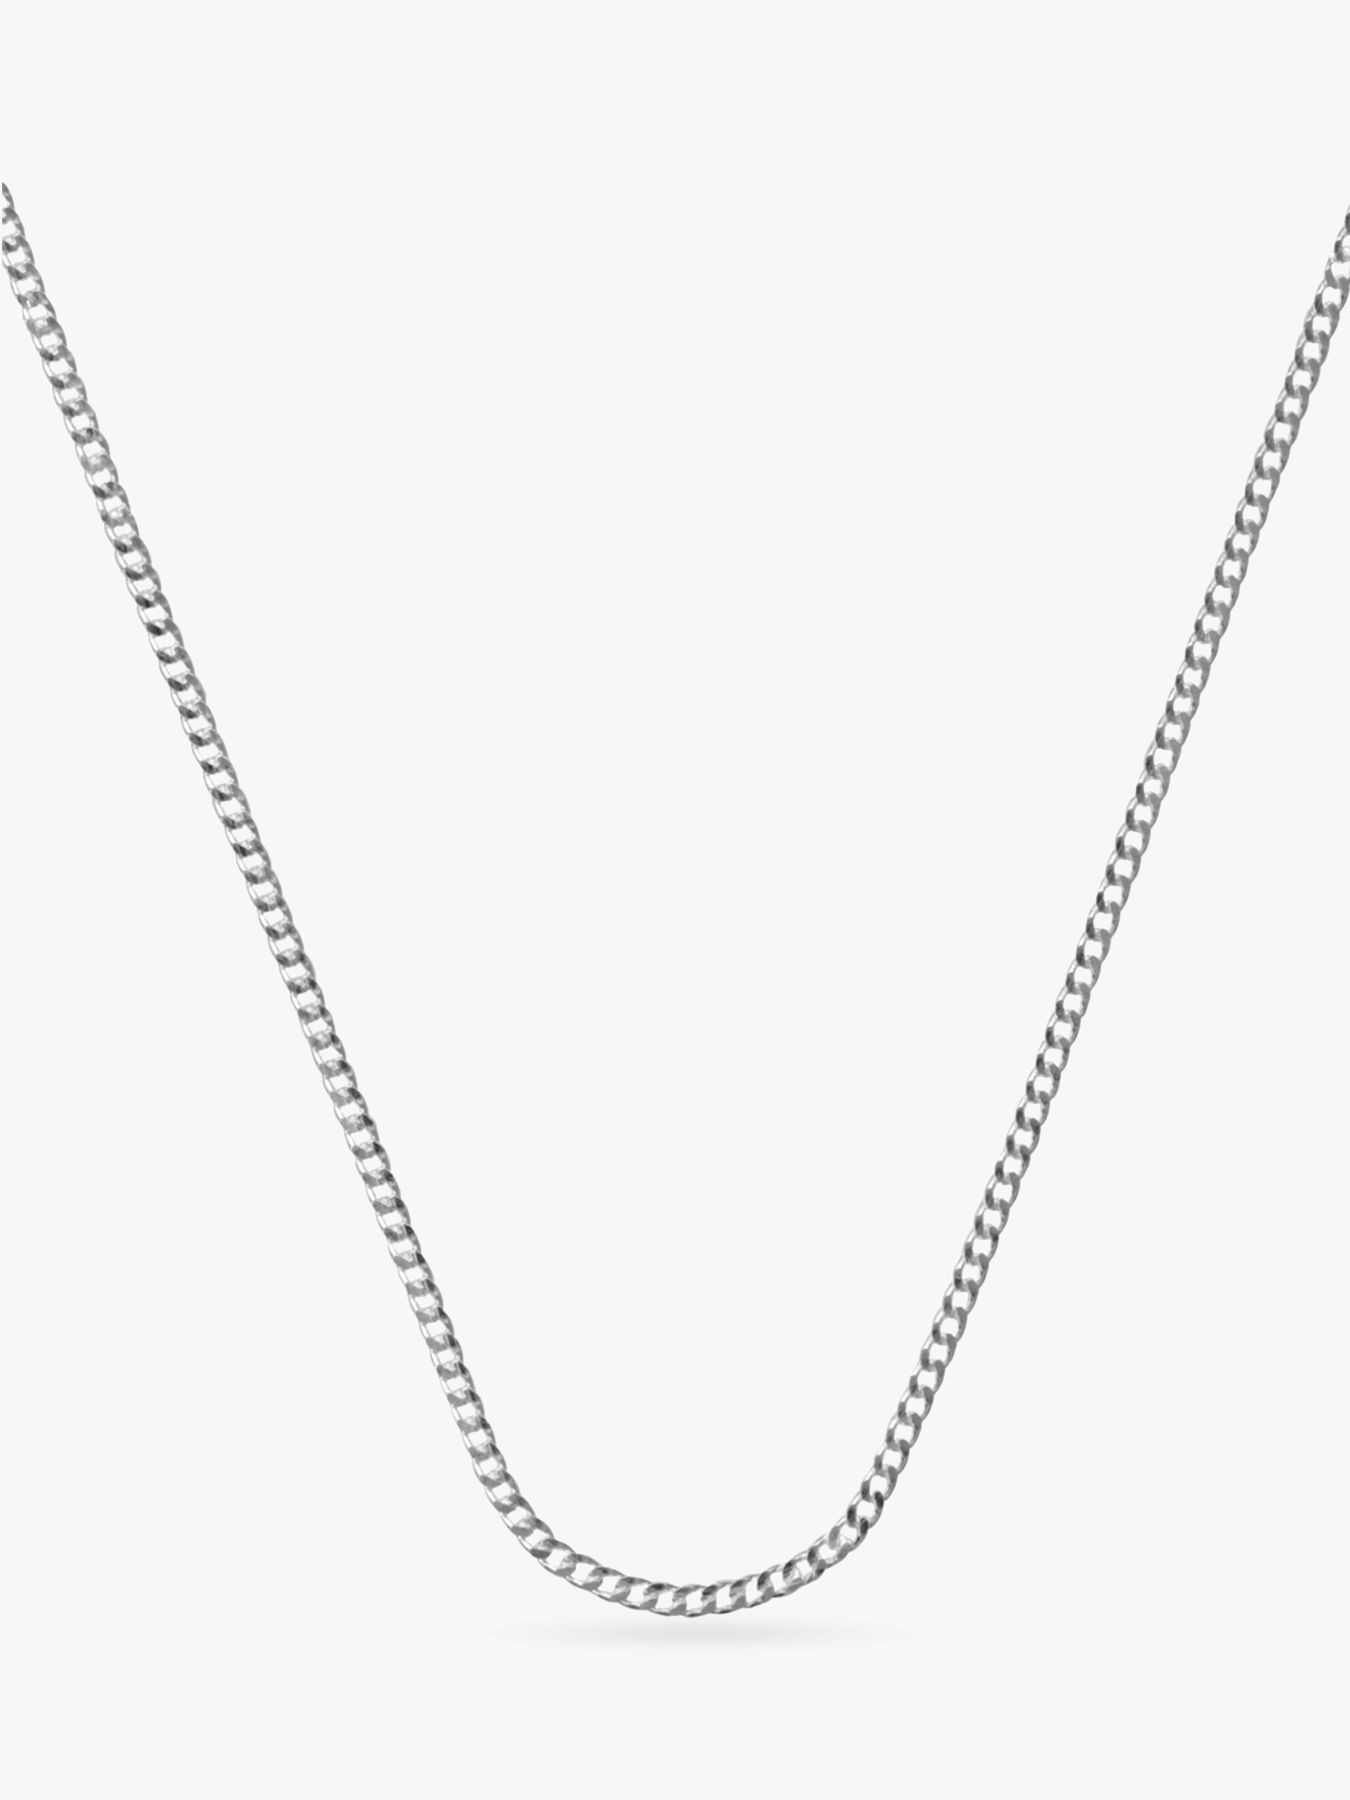 Nina Breddal Curb Chain Necklace, 40cm